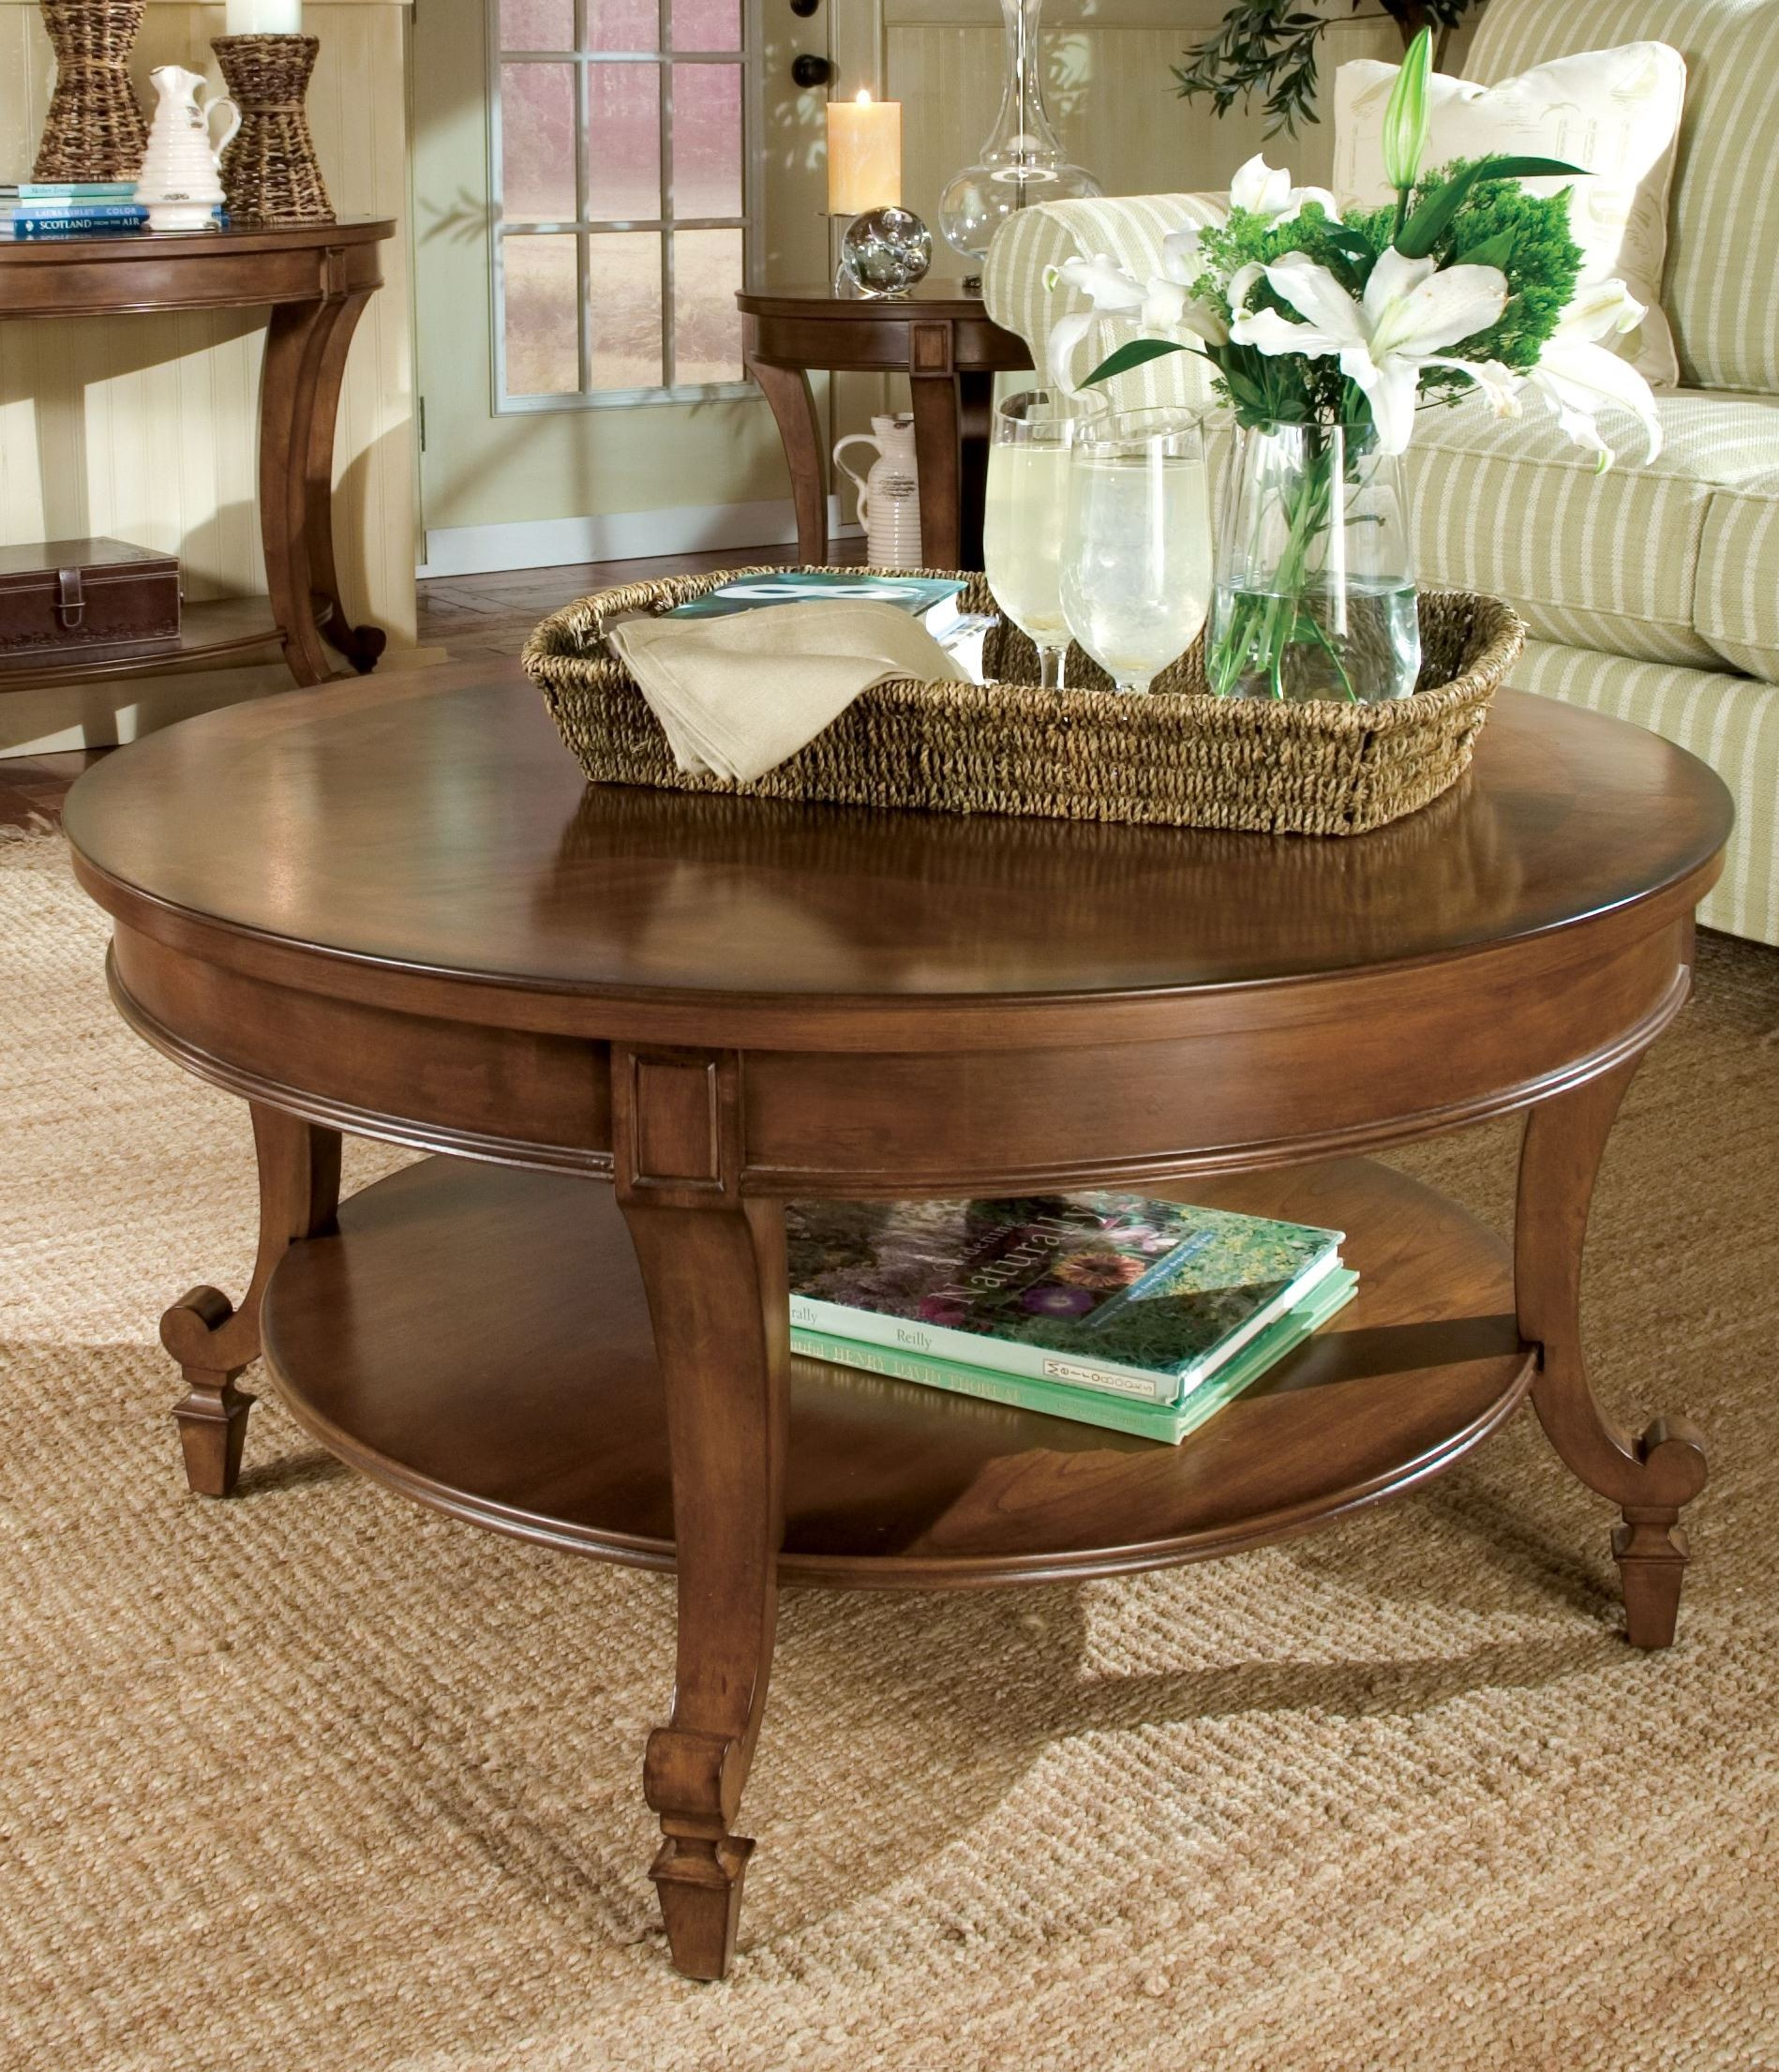 Aidan round cocktail table from magnussen home t1052 45 Round cocktail table